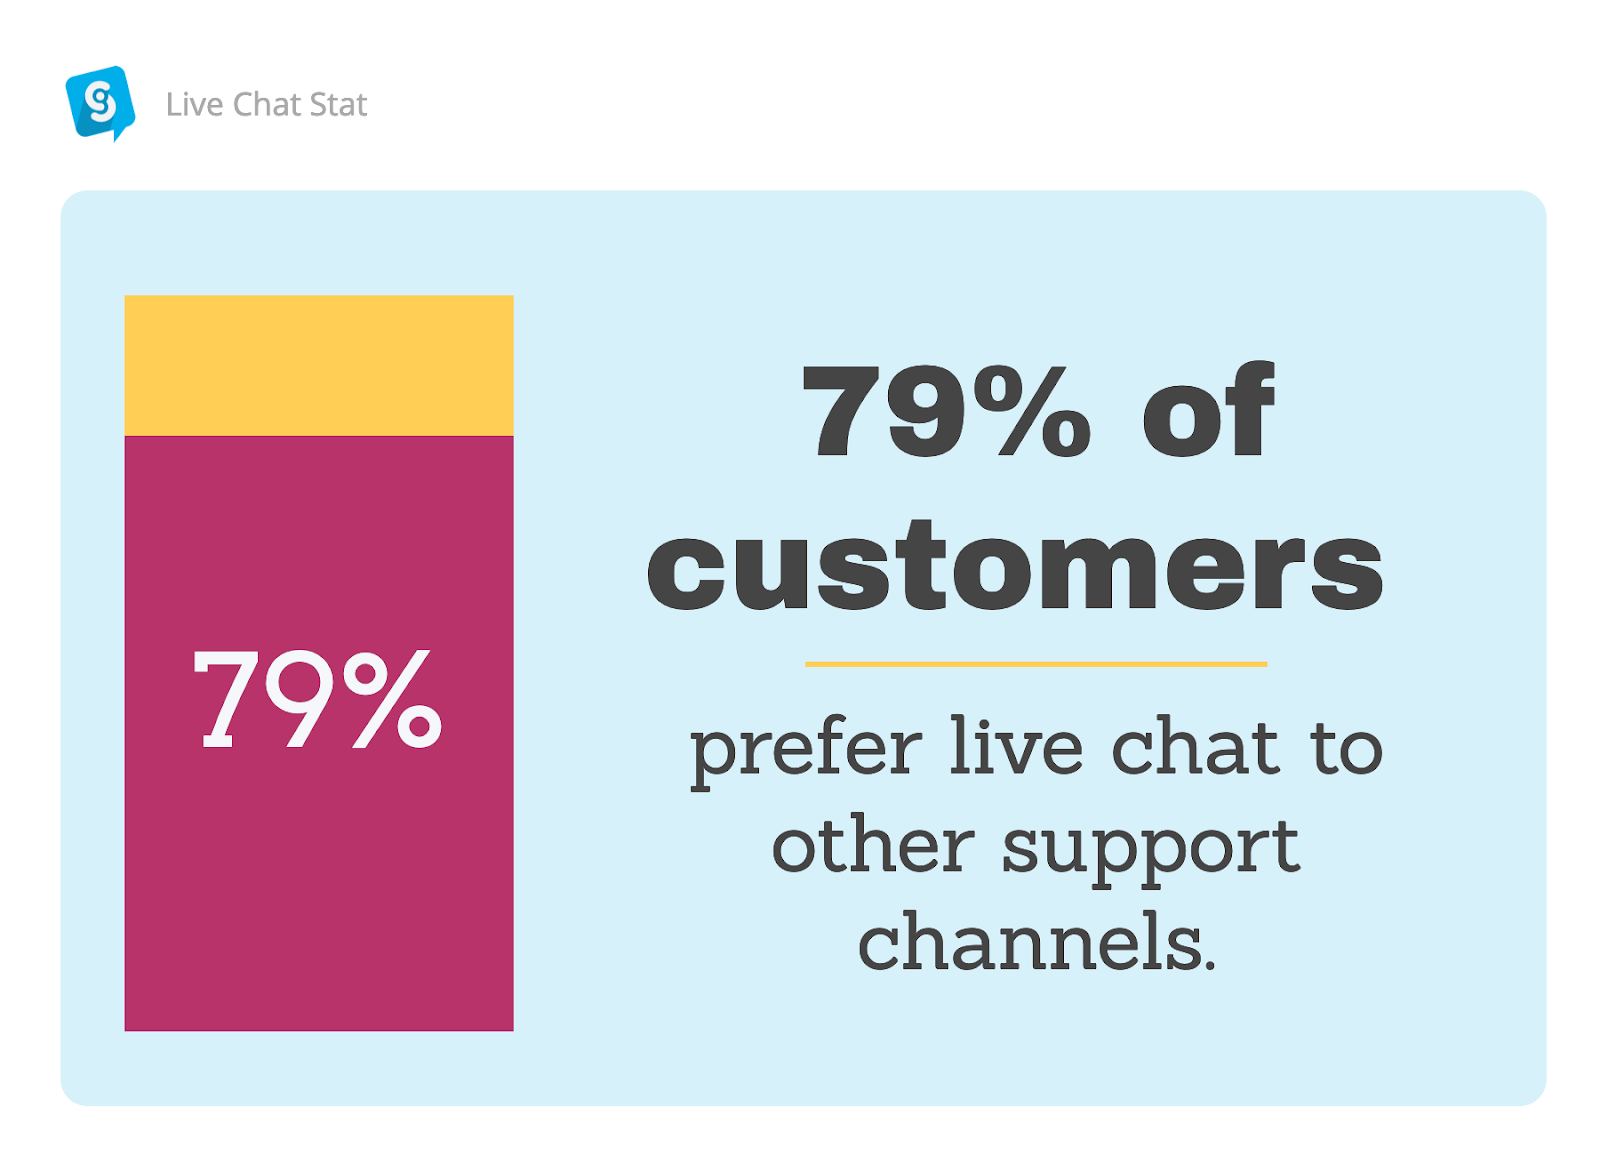 Data proving the usefulness of live chat for customer support.